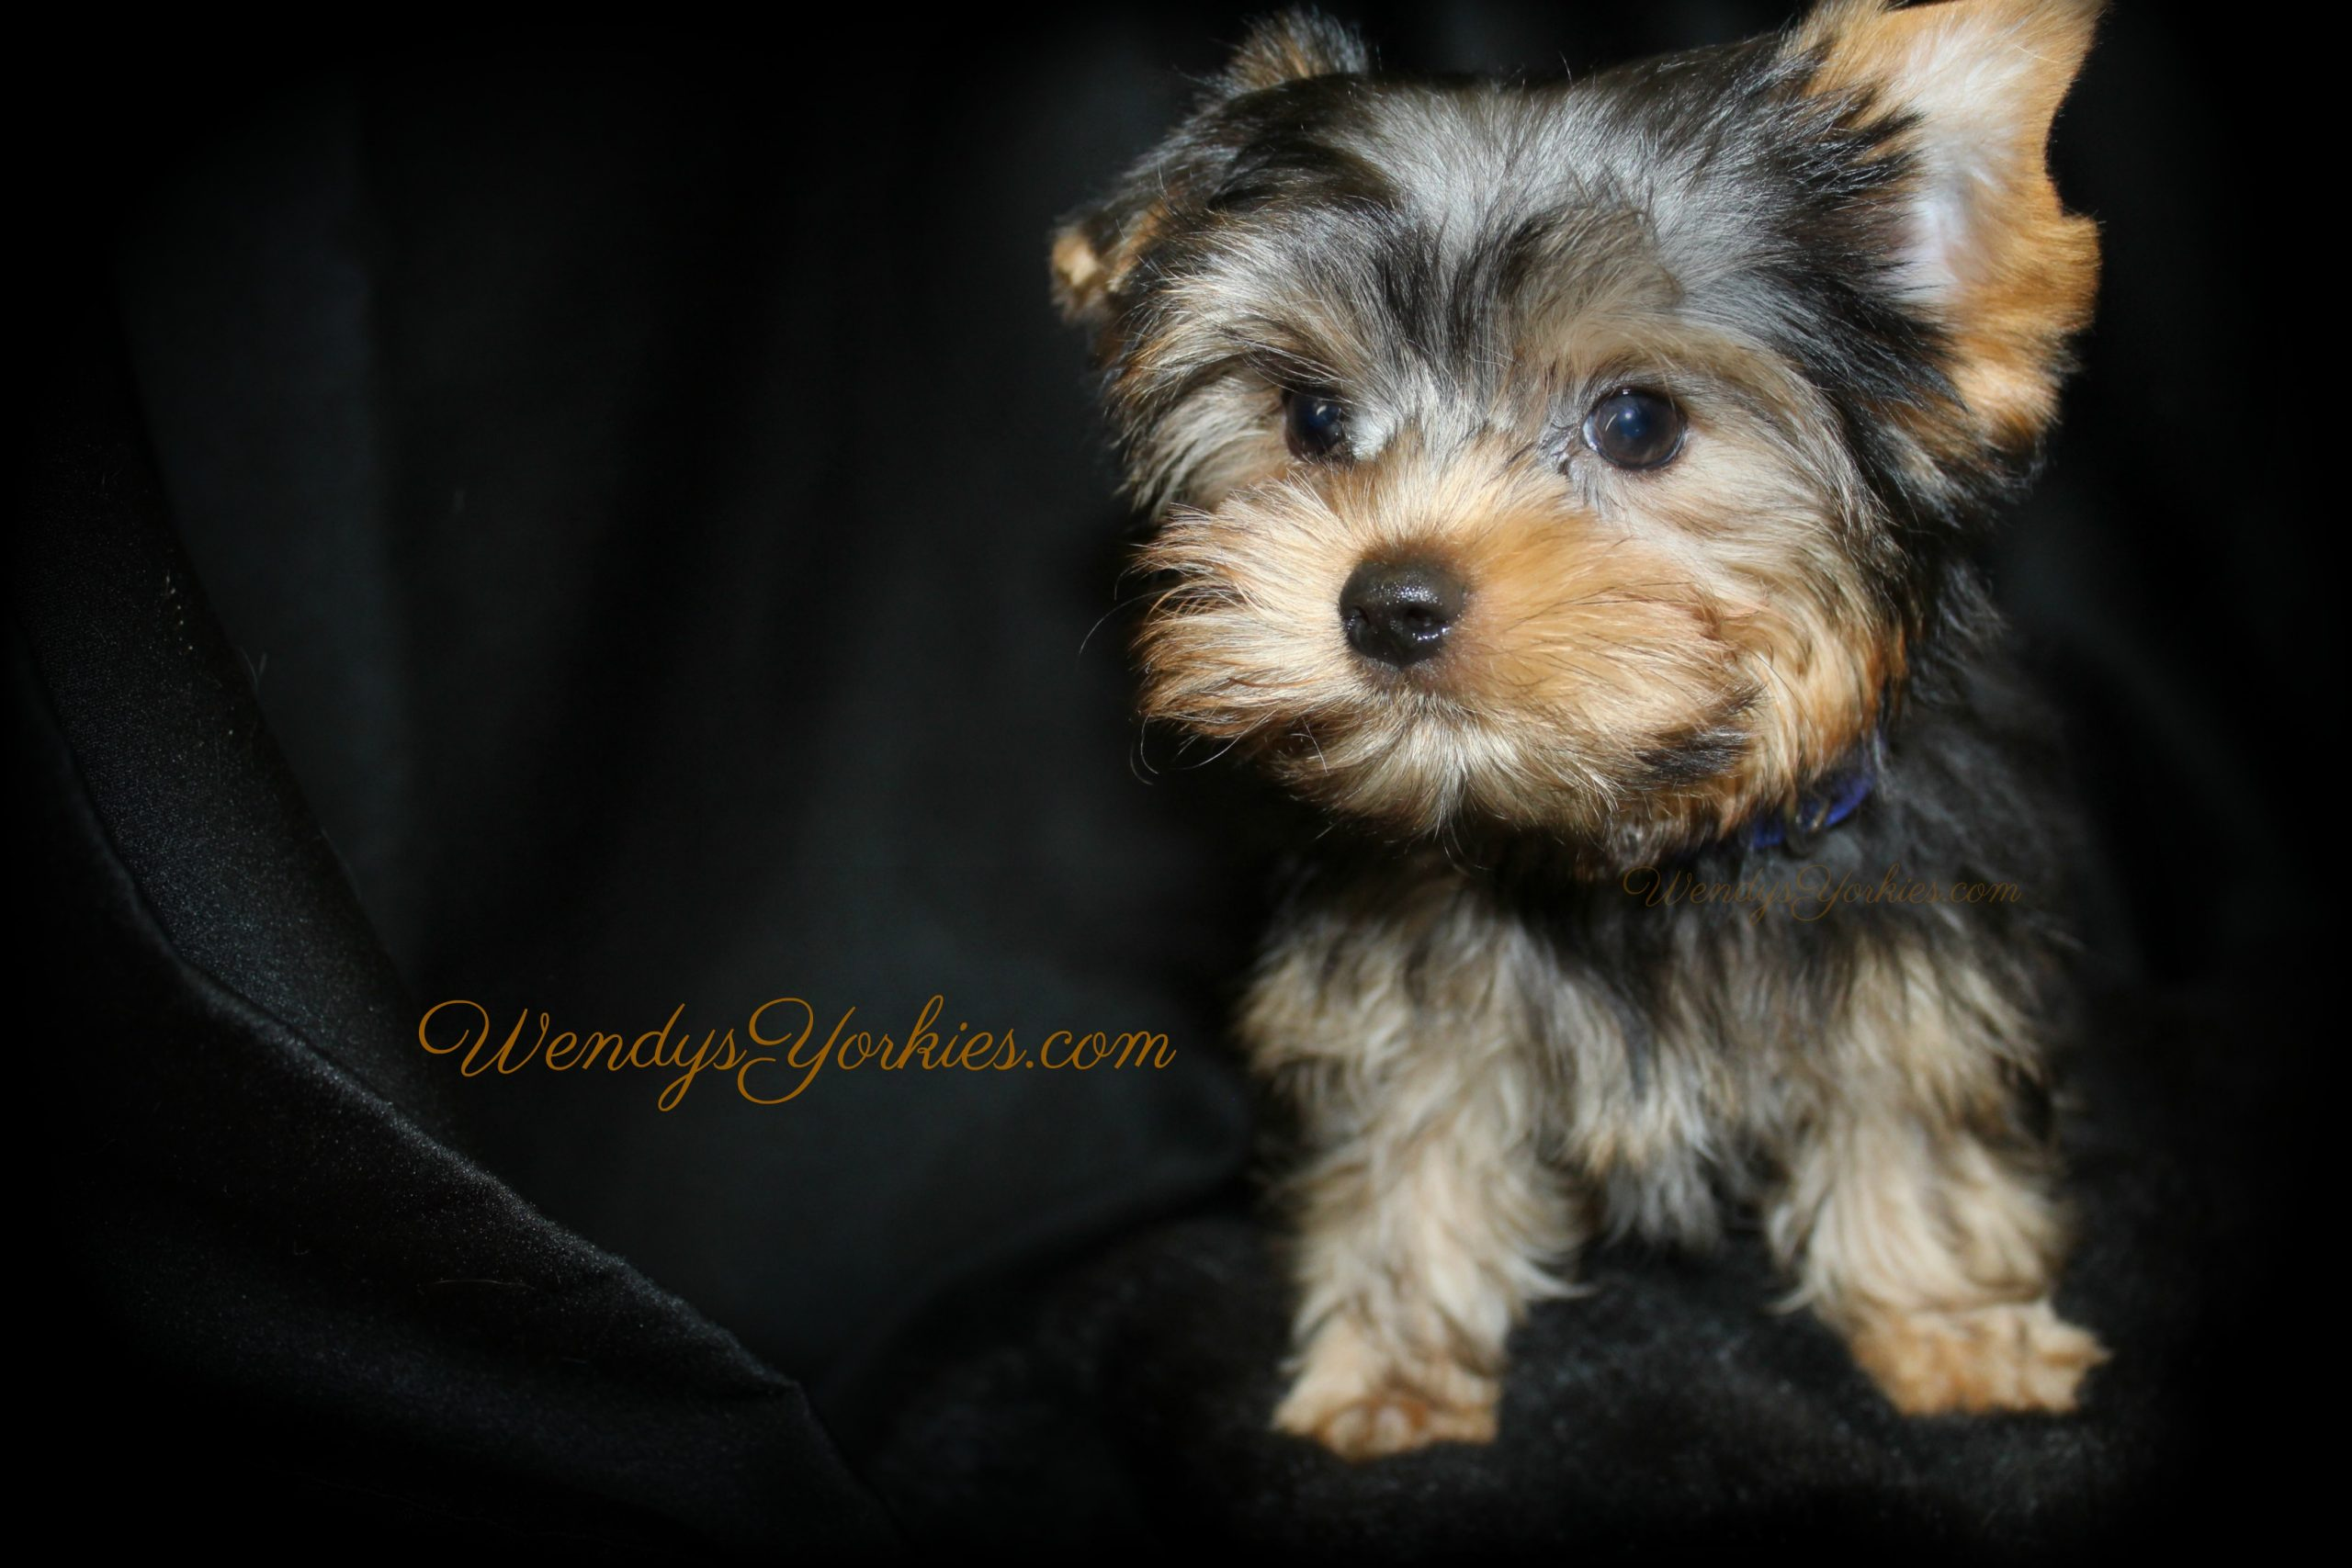 Cute Yorkie puppy for sale, Ritz, WendysYorkies.com